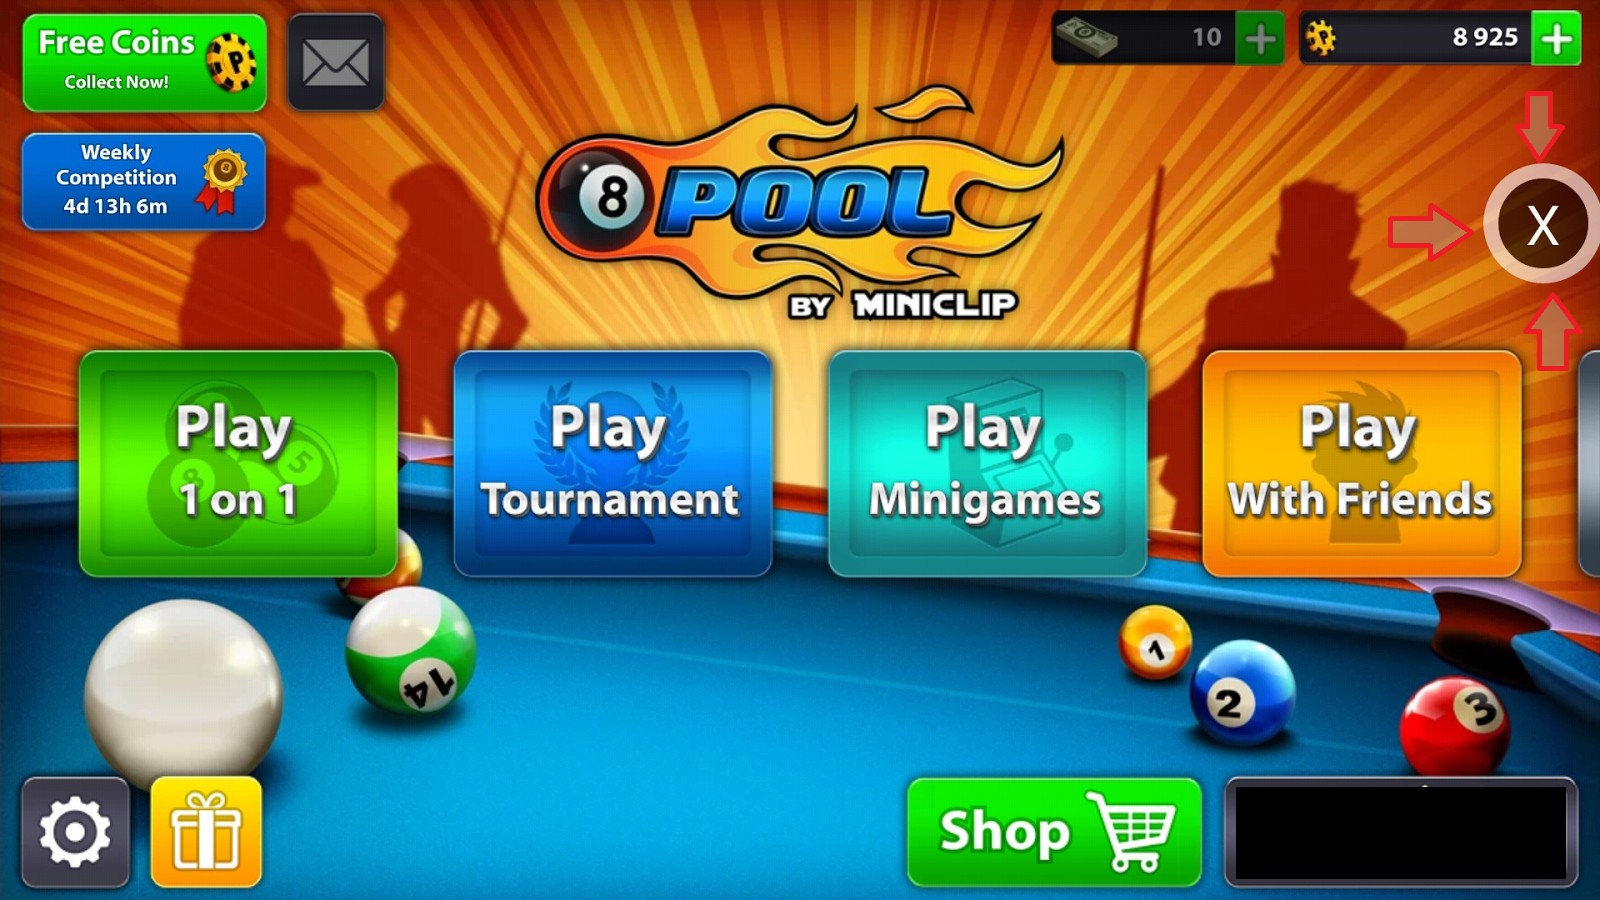 8 Ball Pool Cash Mod Root 8 Ball Pool Hack Guide Line Hack Android Hackers